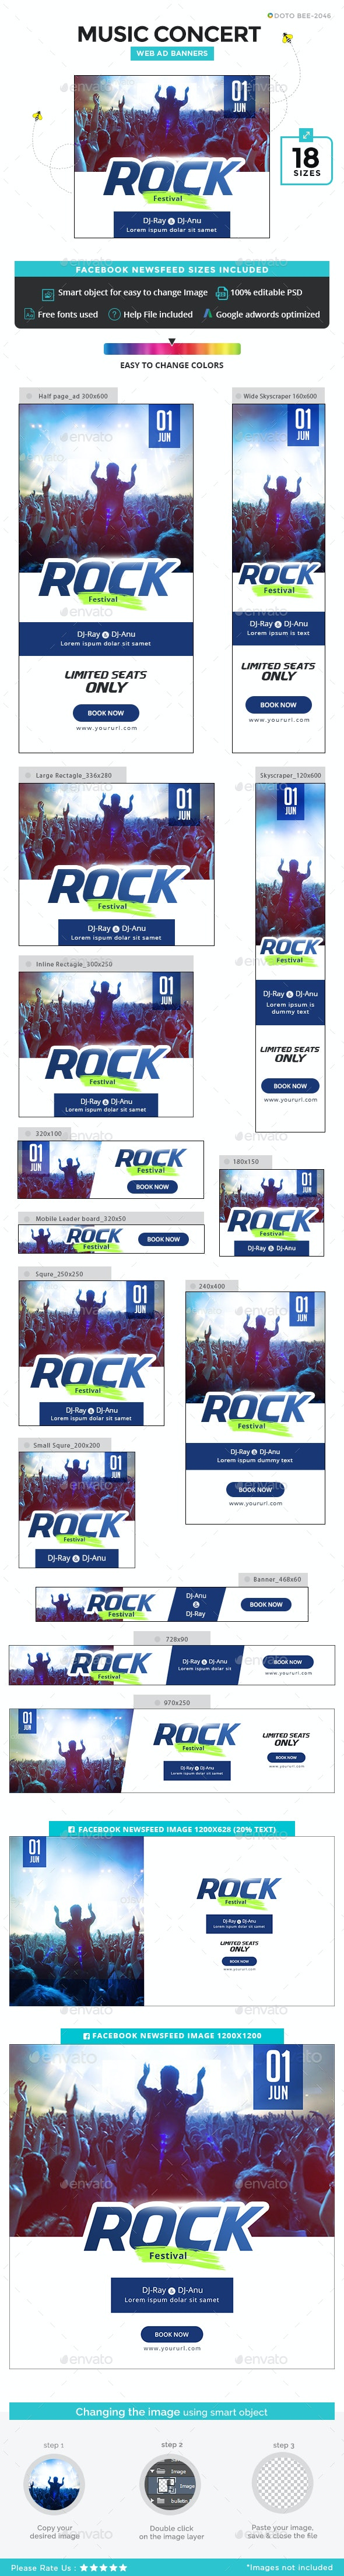 Music Concert Banners - Banners & Ads Web Elements